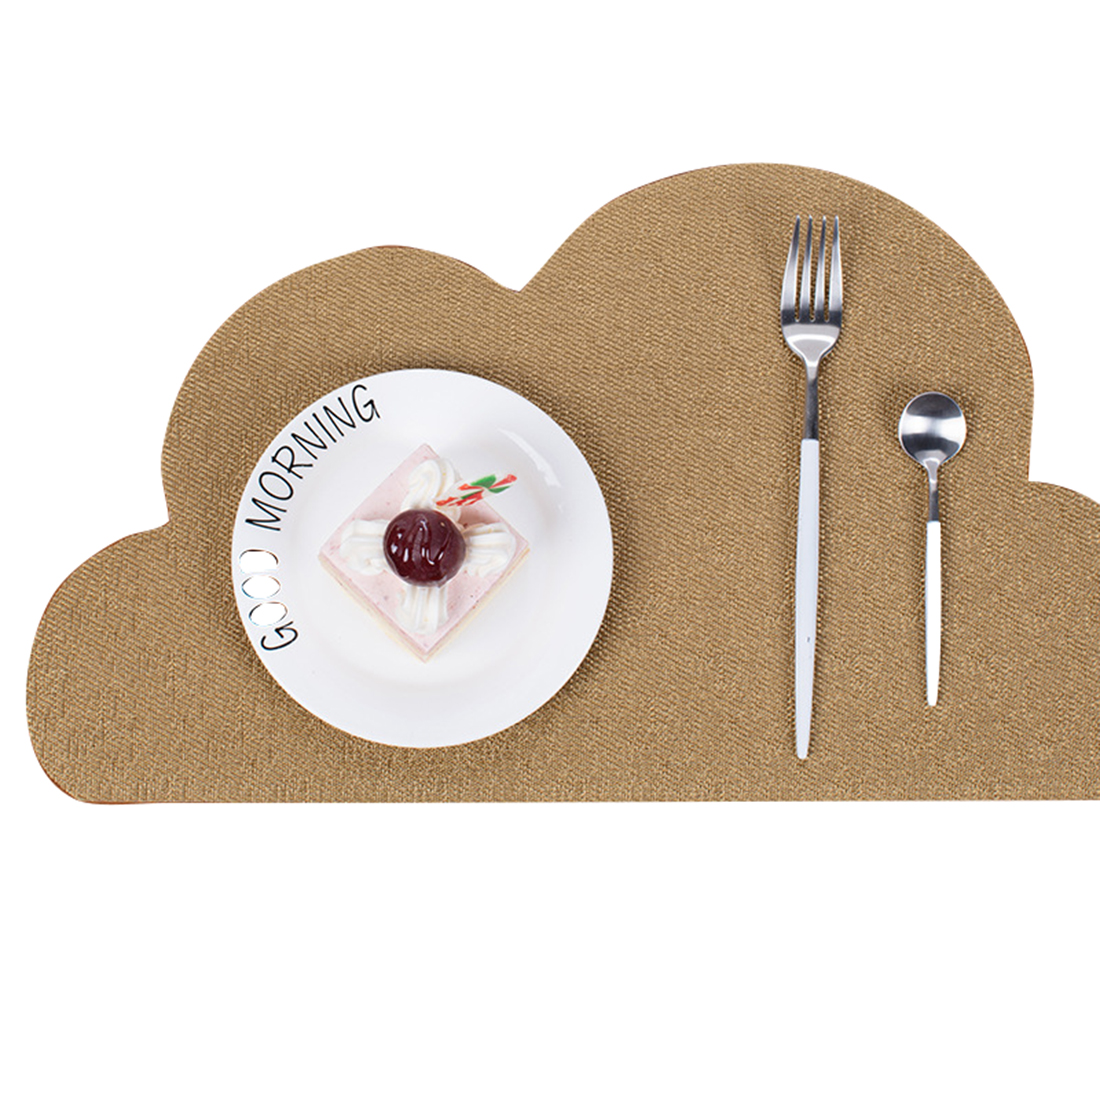 Cute PVC Placemat Dining Mat Baby Kids Cloud Shaped Plate Mat Table Mat Drink Coasters Waterproof Set Home Kitchen Pads 45x30cm